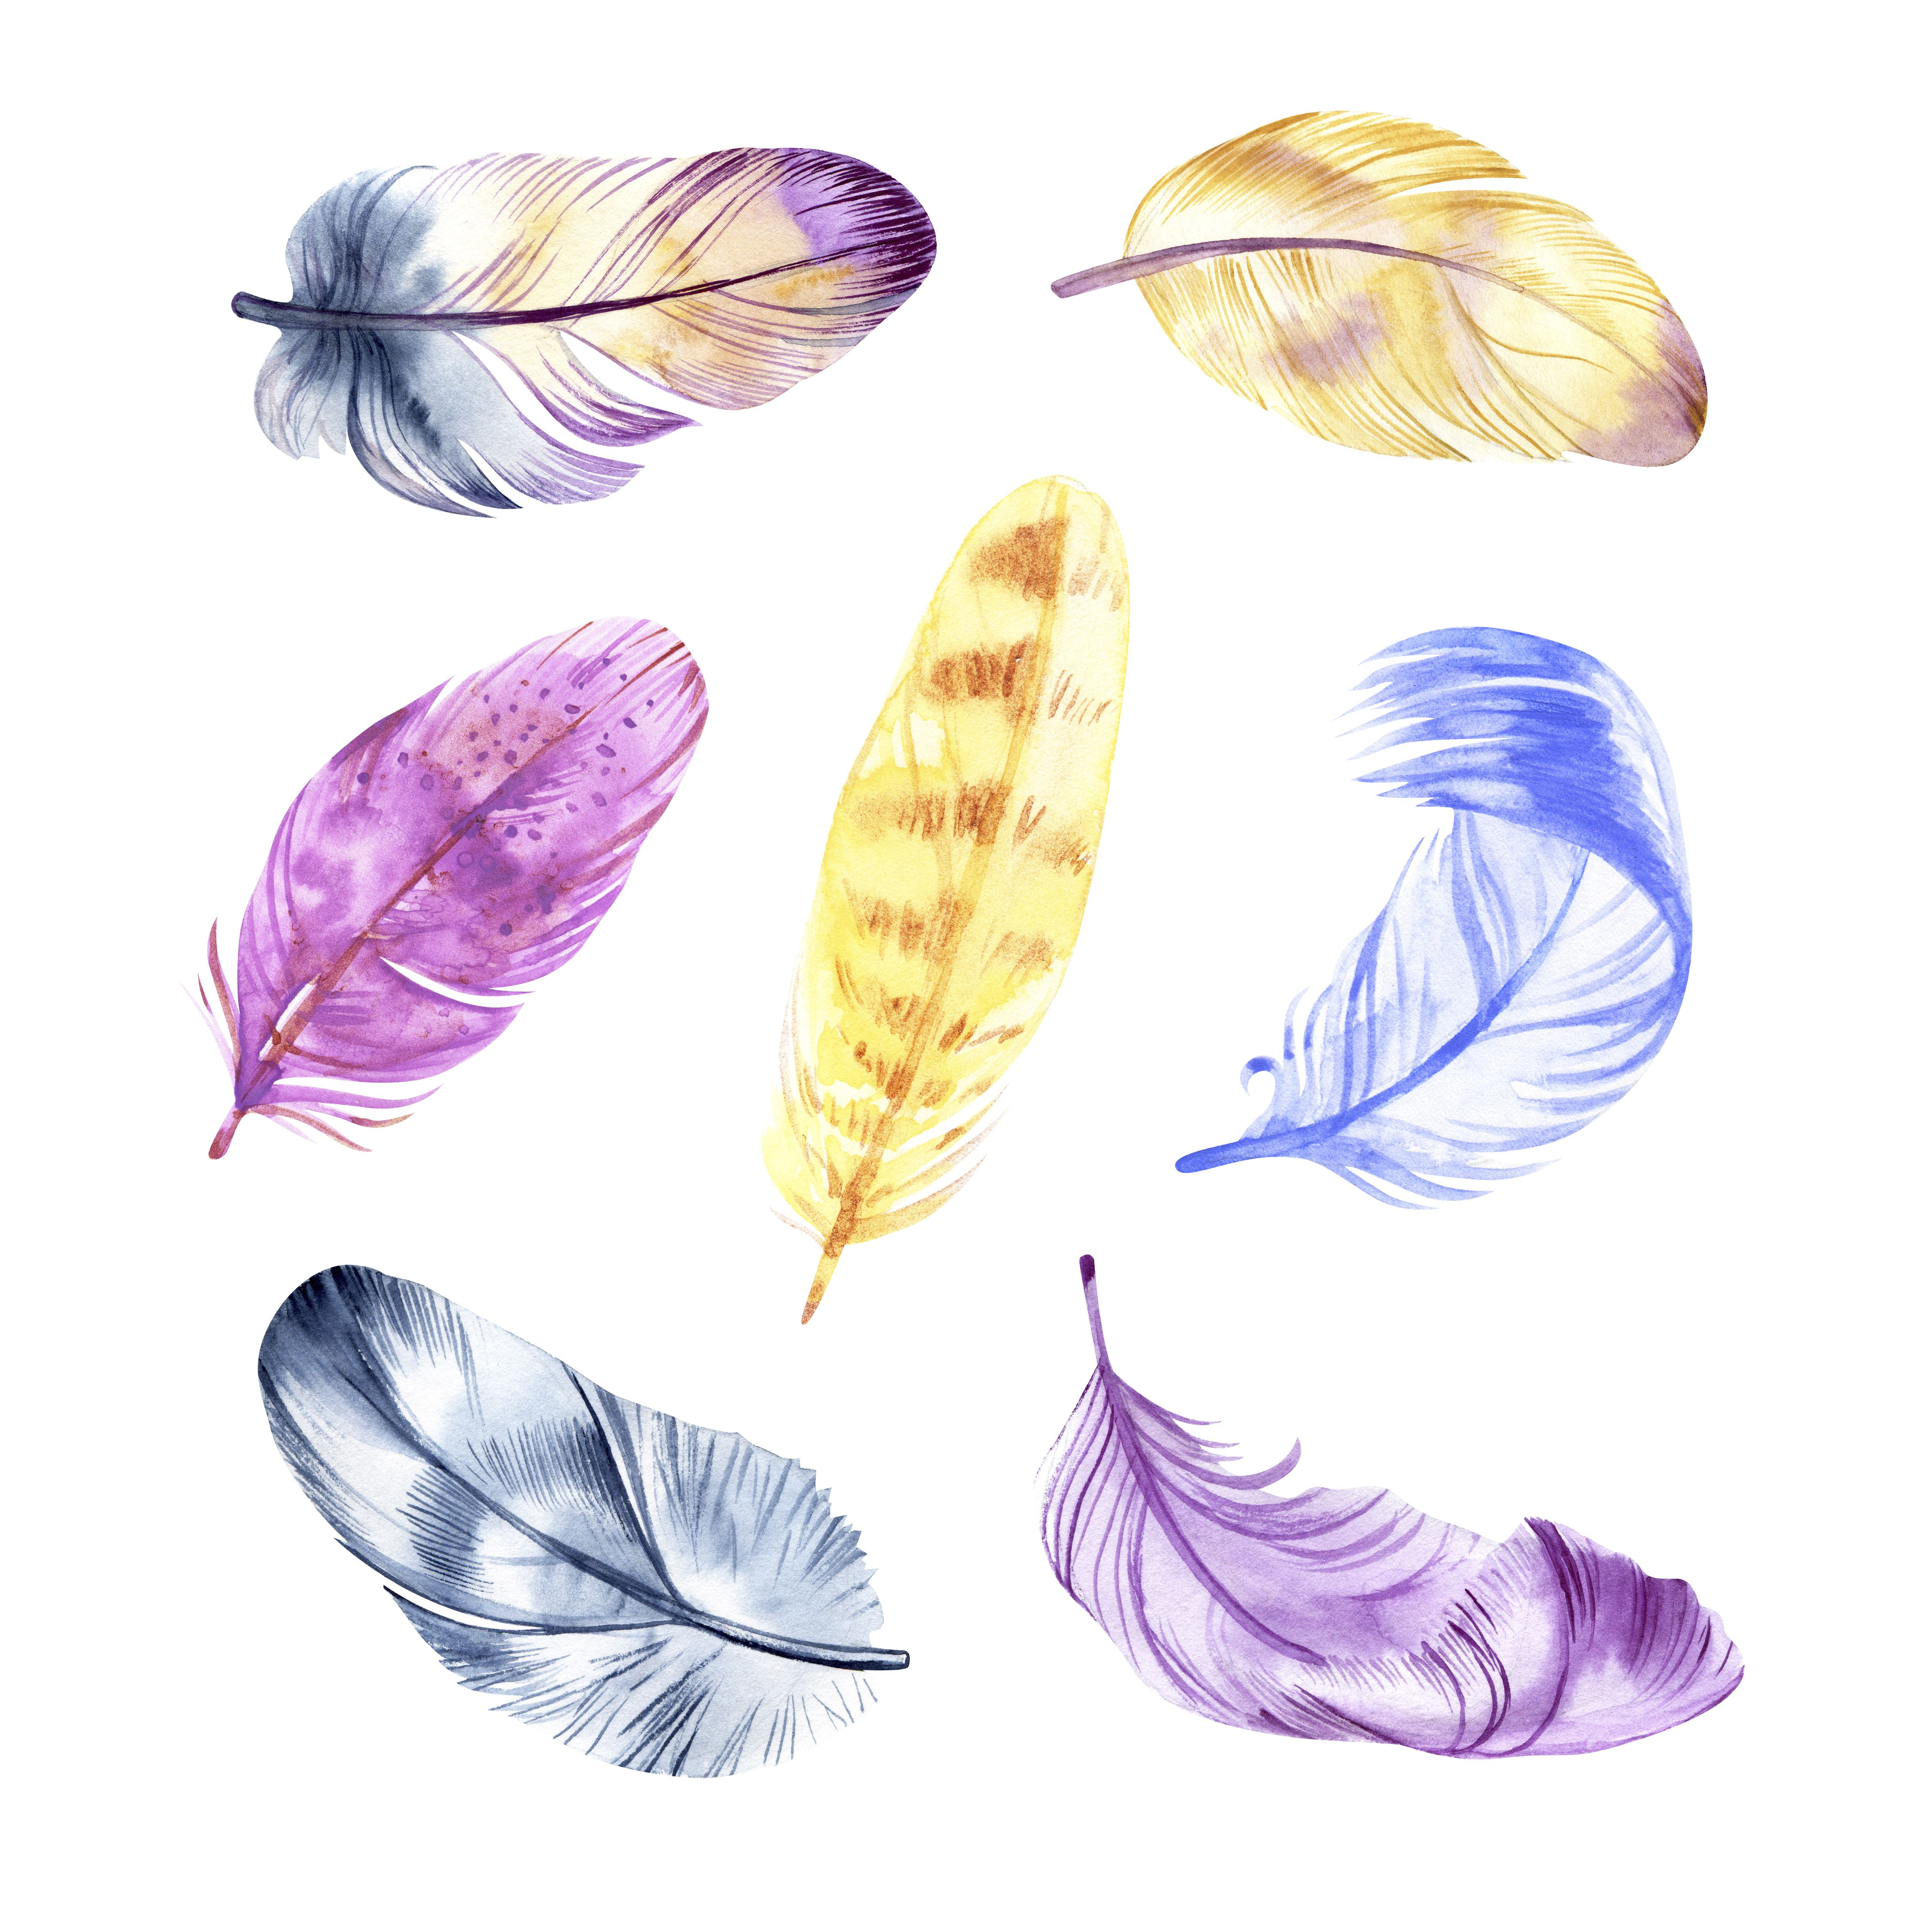 Watercolor Feathers Feather Clip Art Nature clipart Forest Clip Art Wild Animals Fauna Clipart Animal Art